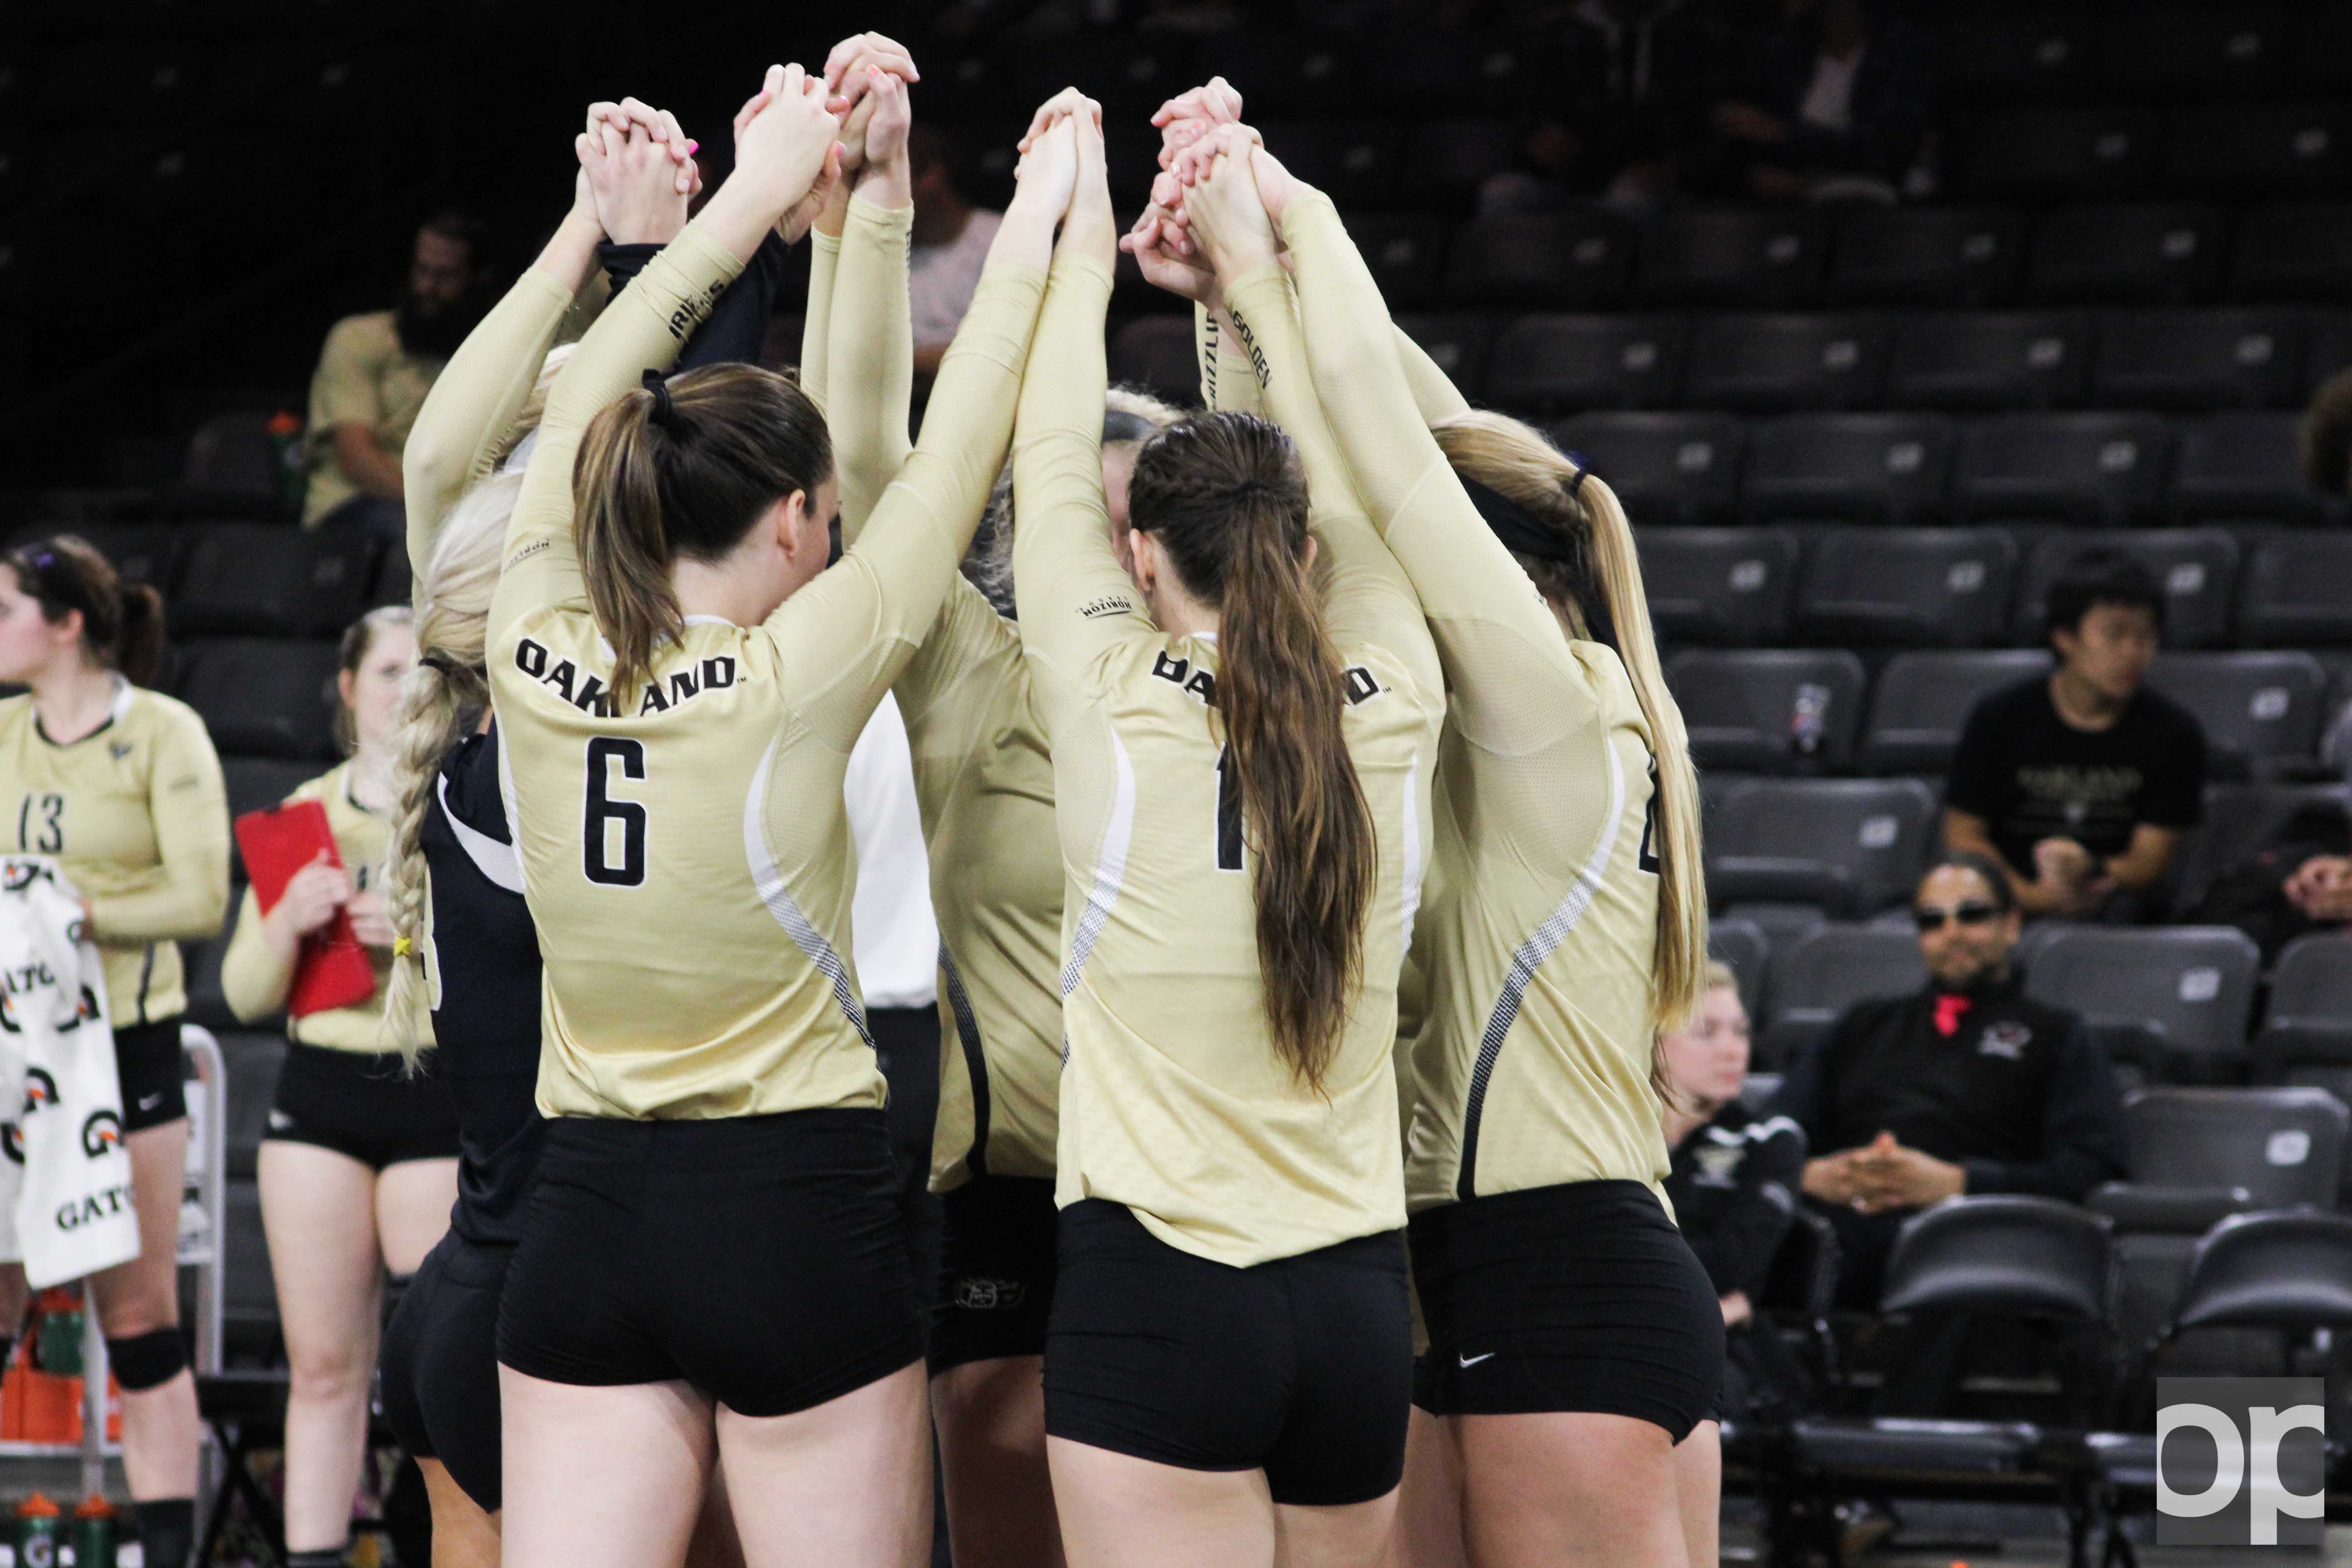 Oakland beat Western Michigan 3-0 at home on Tuesday, Sept. 13.